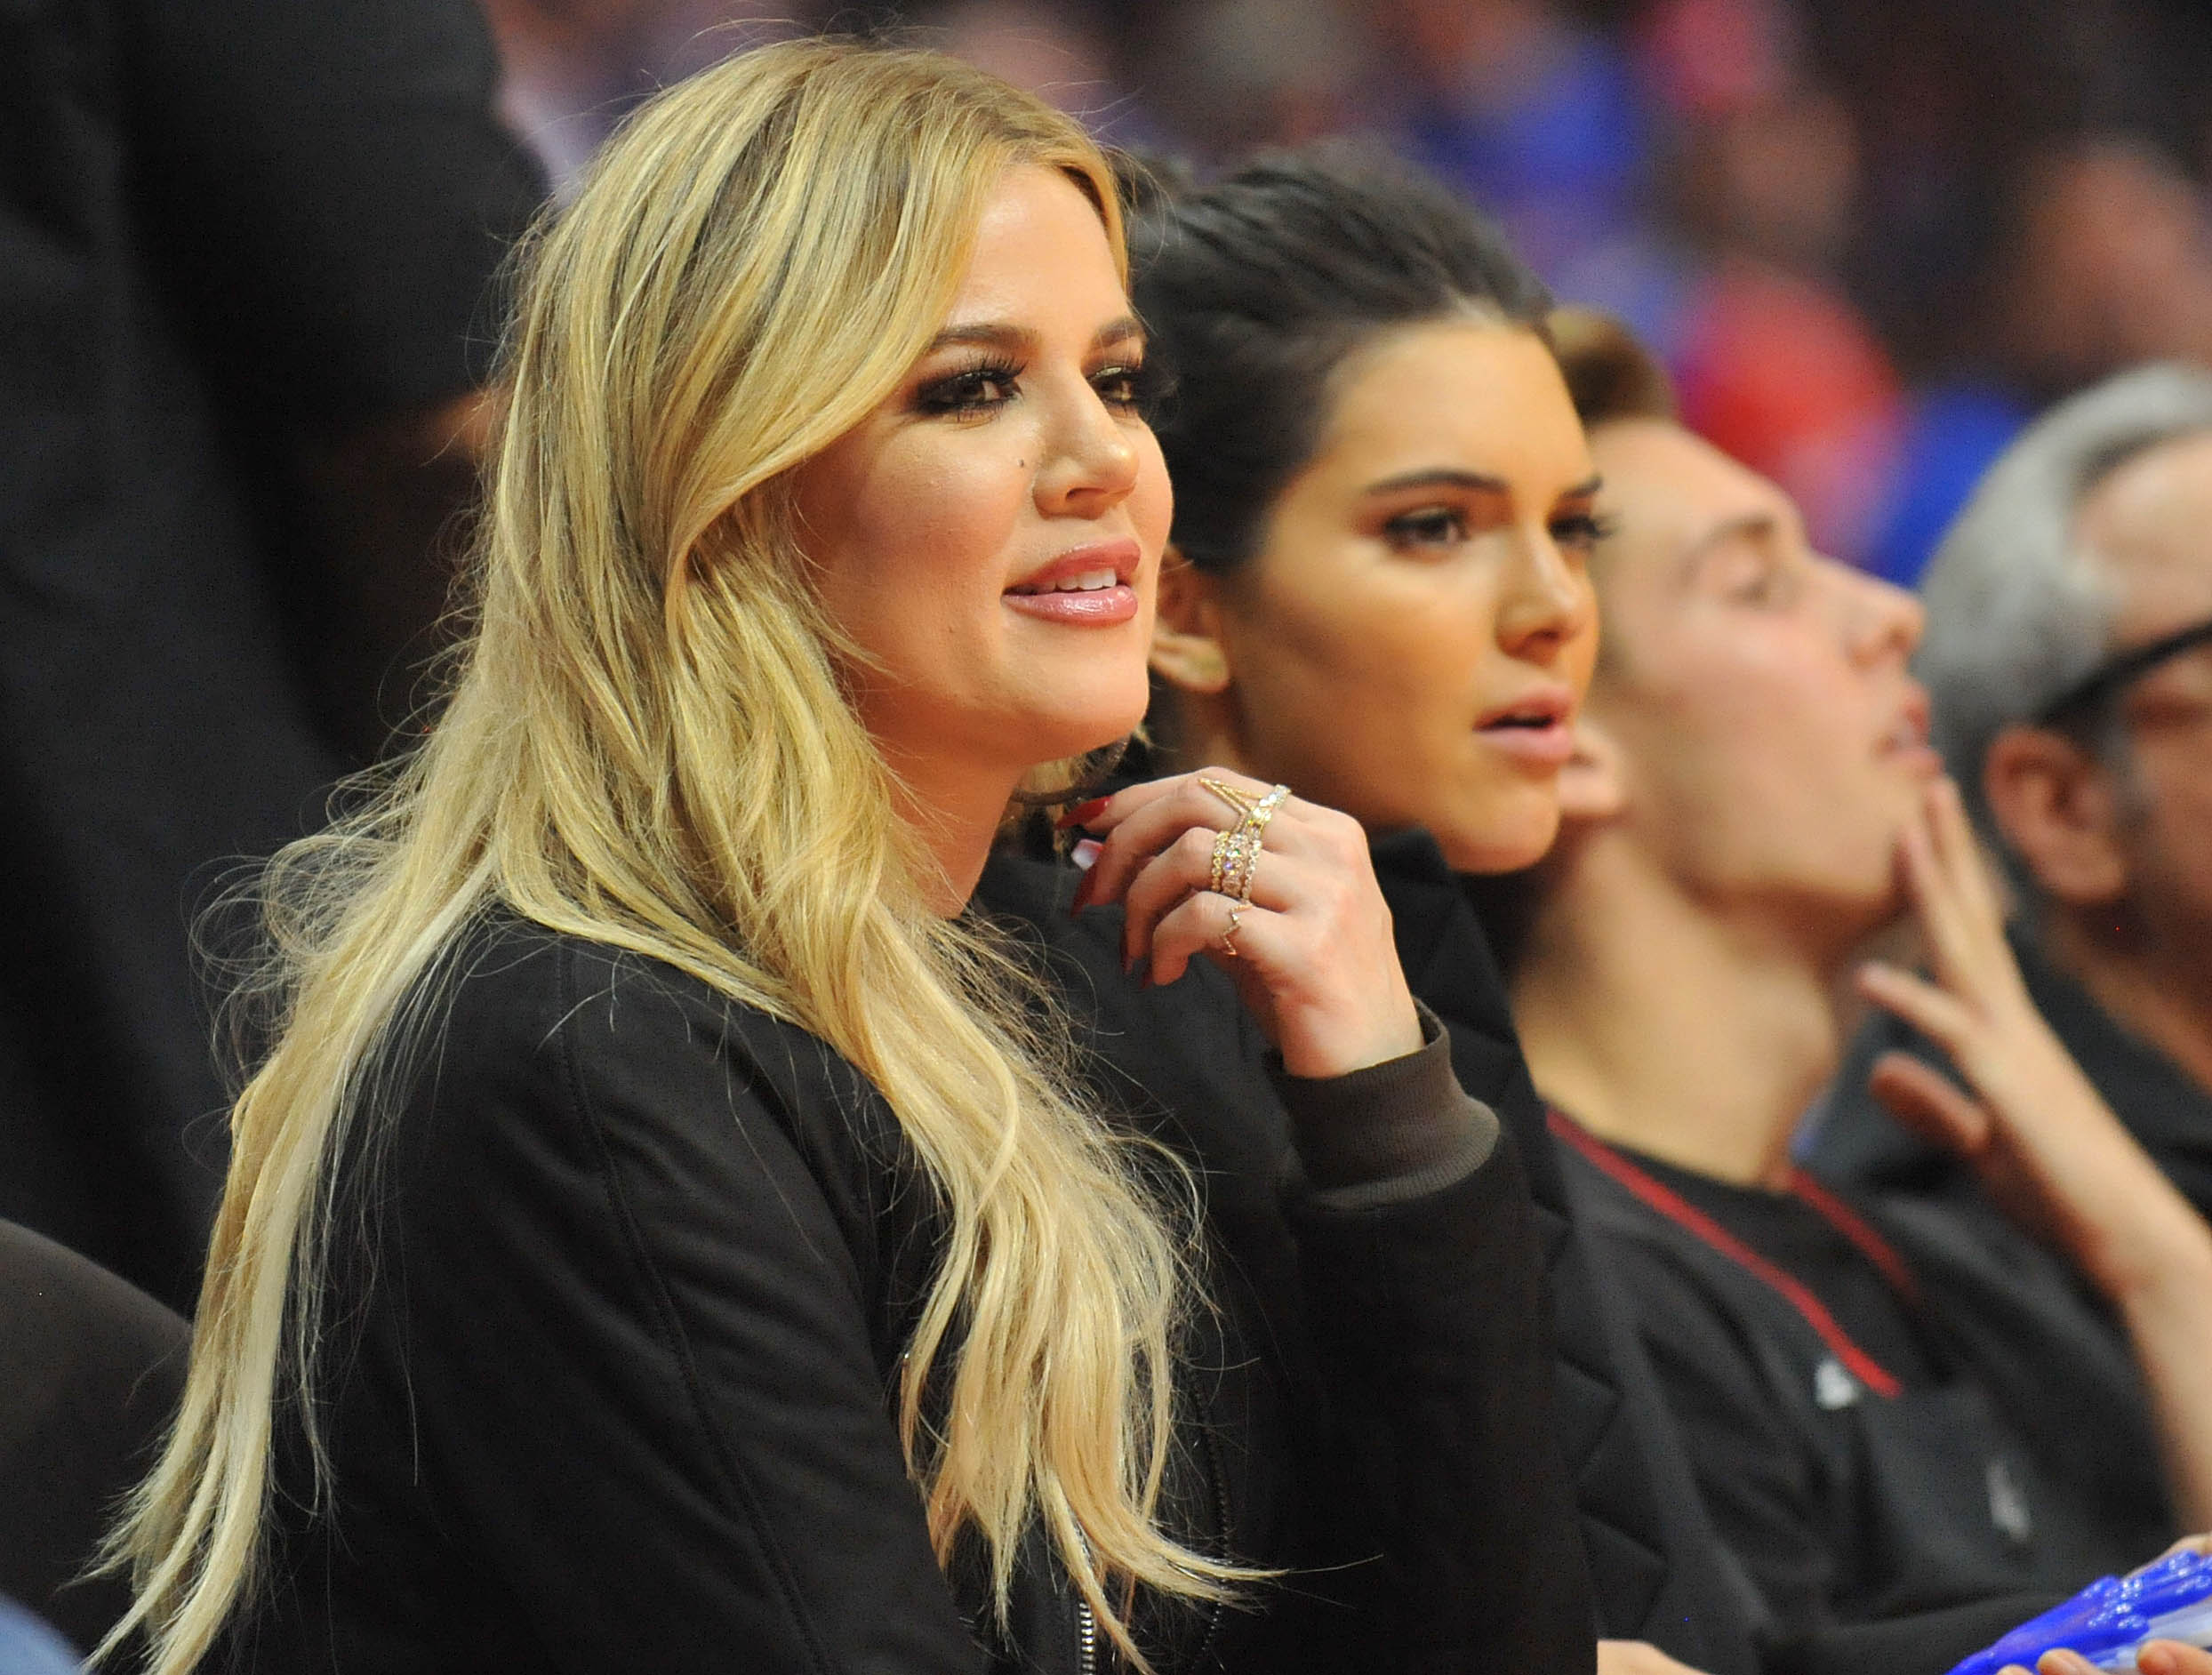 8557394-nba-playoffs-houston-rockets-at-los-angeles-clippers